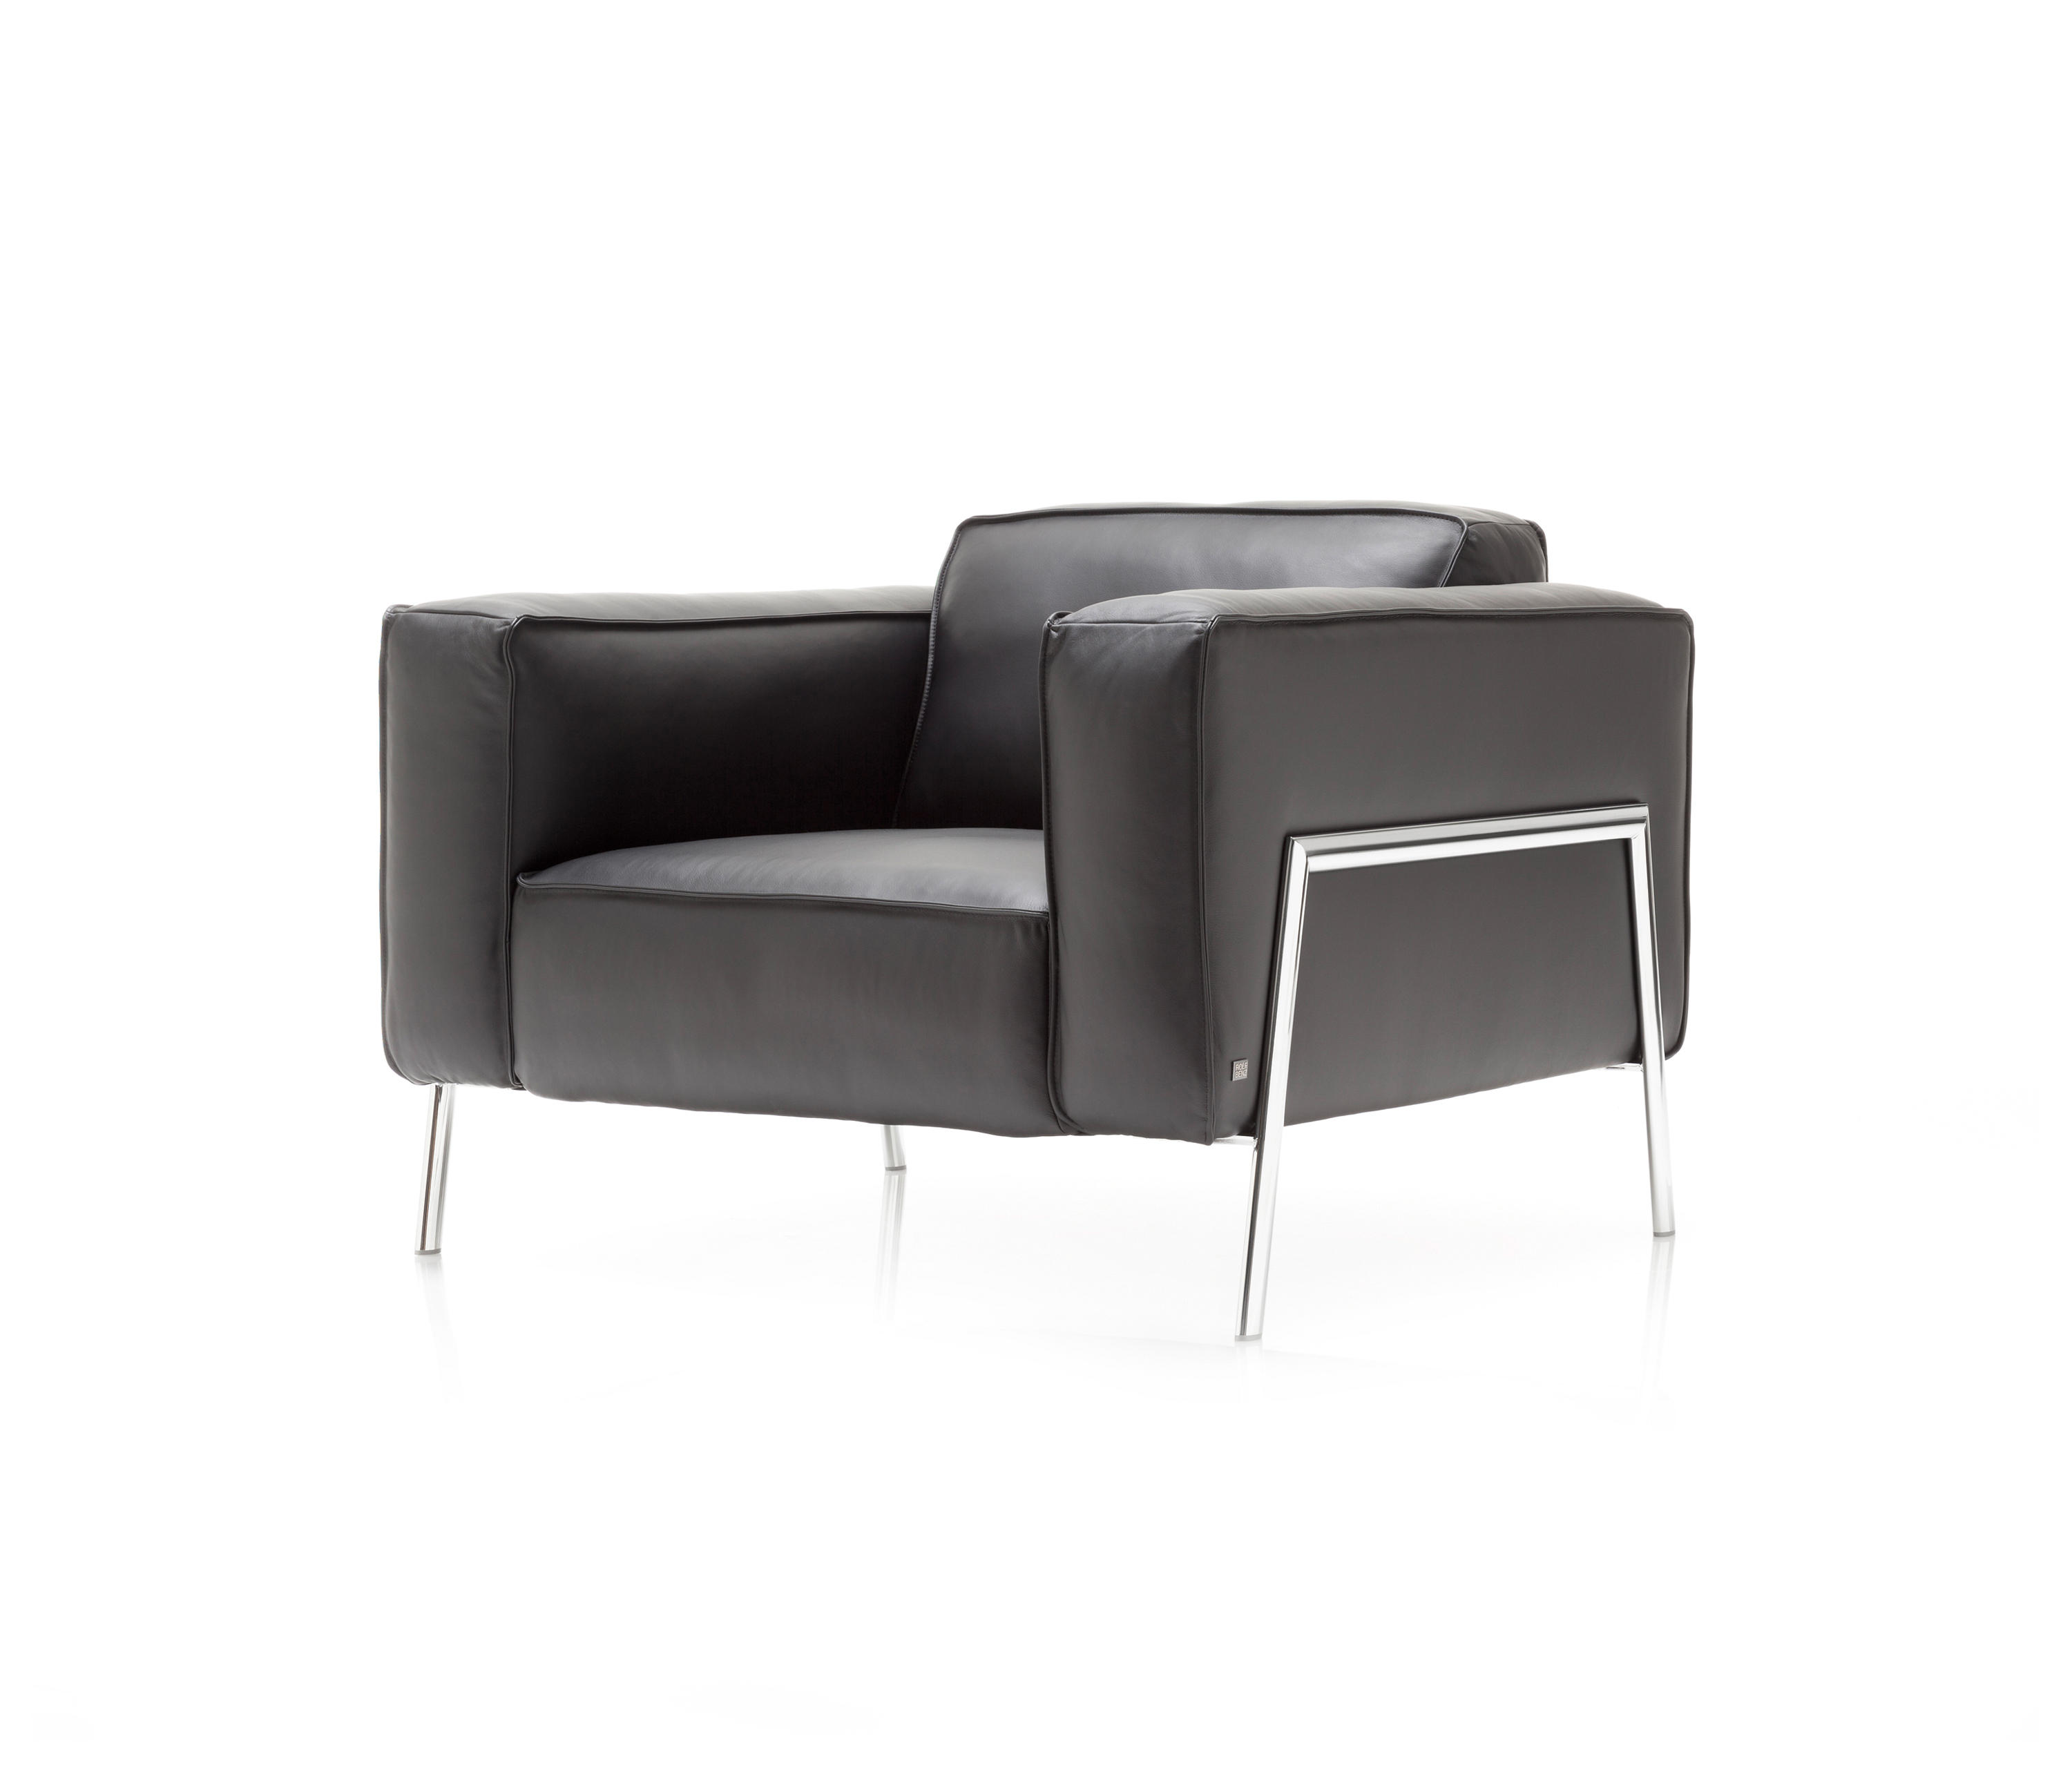 Rolf benz bacio loungesessel von rolf benz architonic for Rolf benz 4500